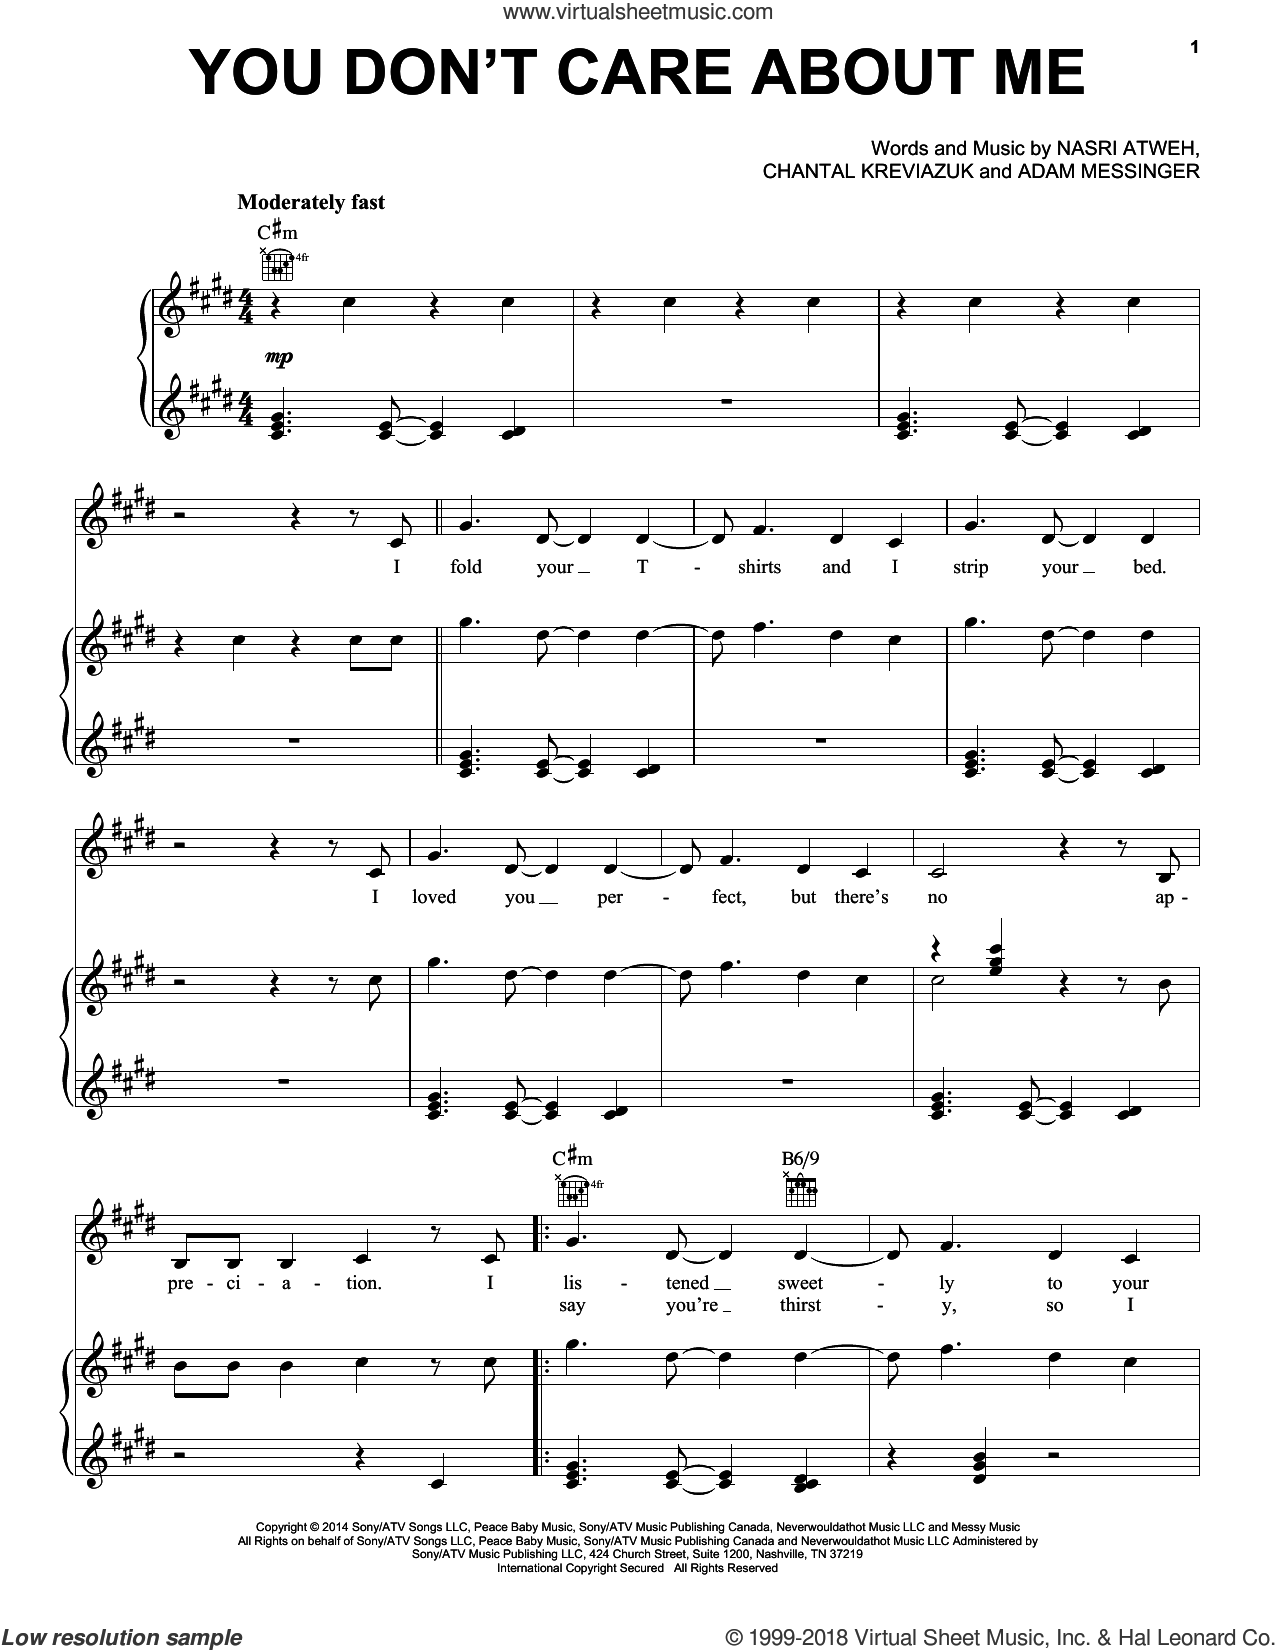 You Don't Care About Me sheet music for voice, piano or guitar by Shakira, Adam Messinger, Chantal Kreviazuk and Nasri Atweh, intermediate skill level